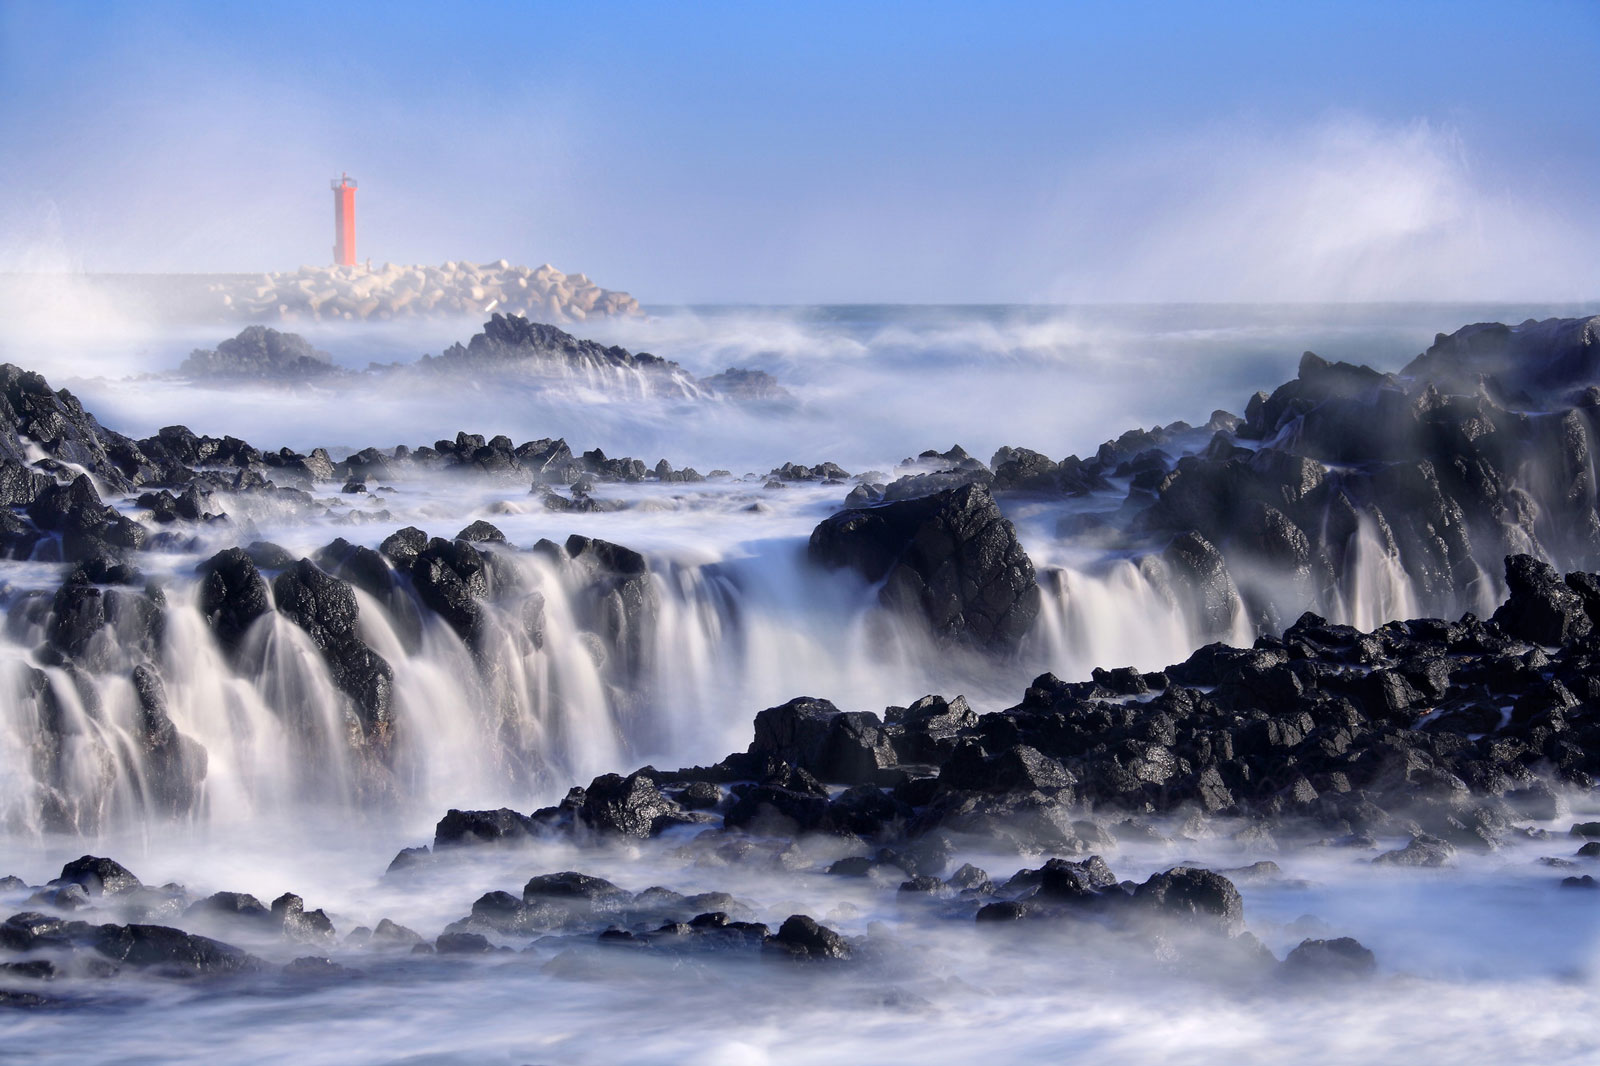 Title: Advancing waves | Photographer: Hyun-jin, Bae | ND400 filter, f/9, 2 sec, ISO100